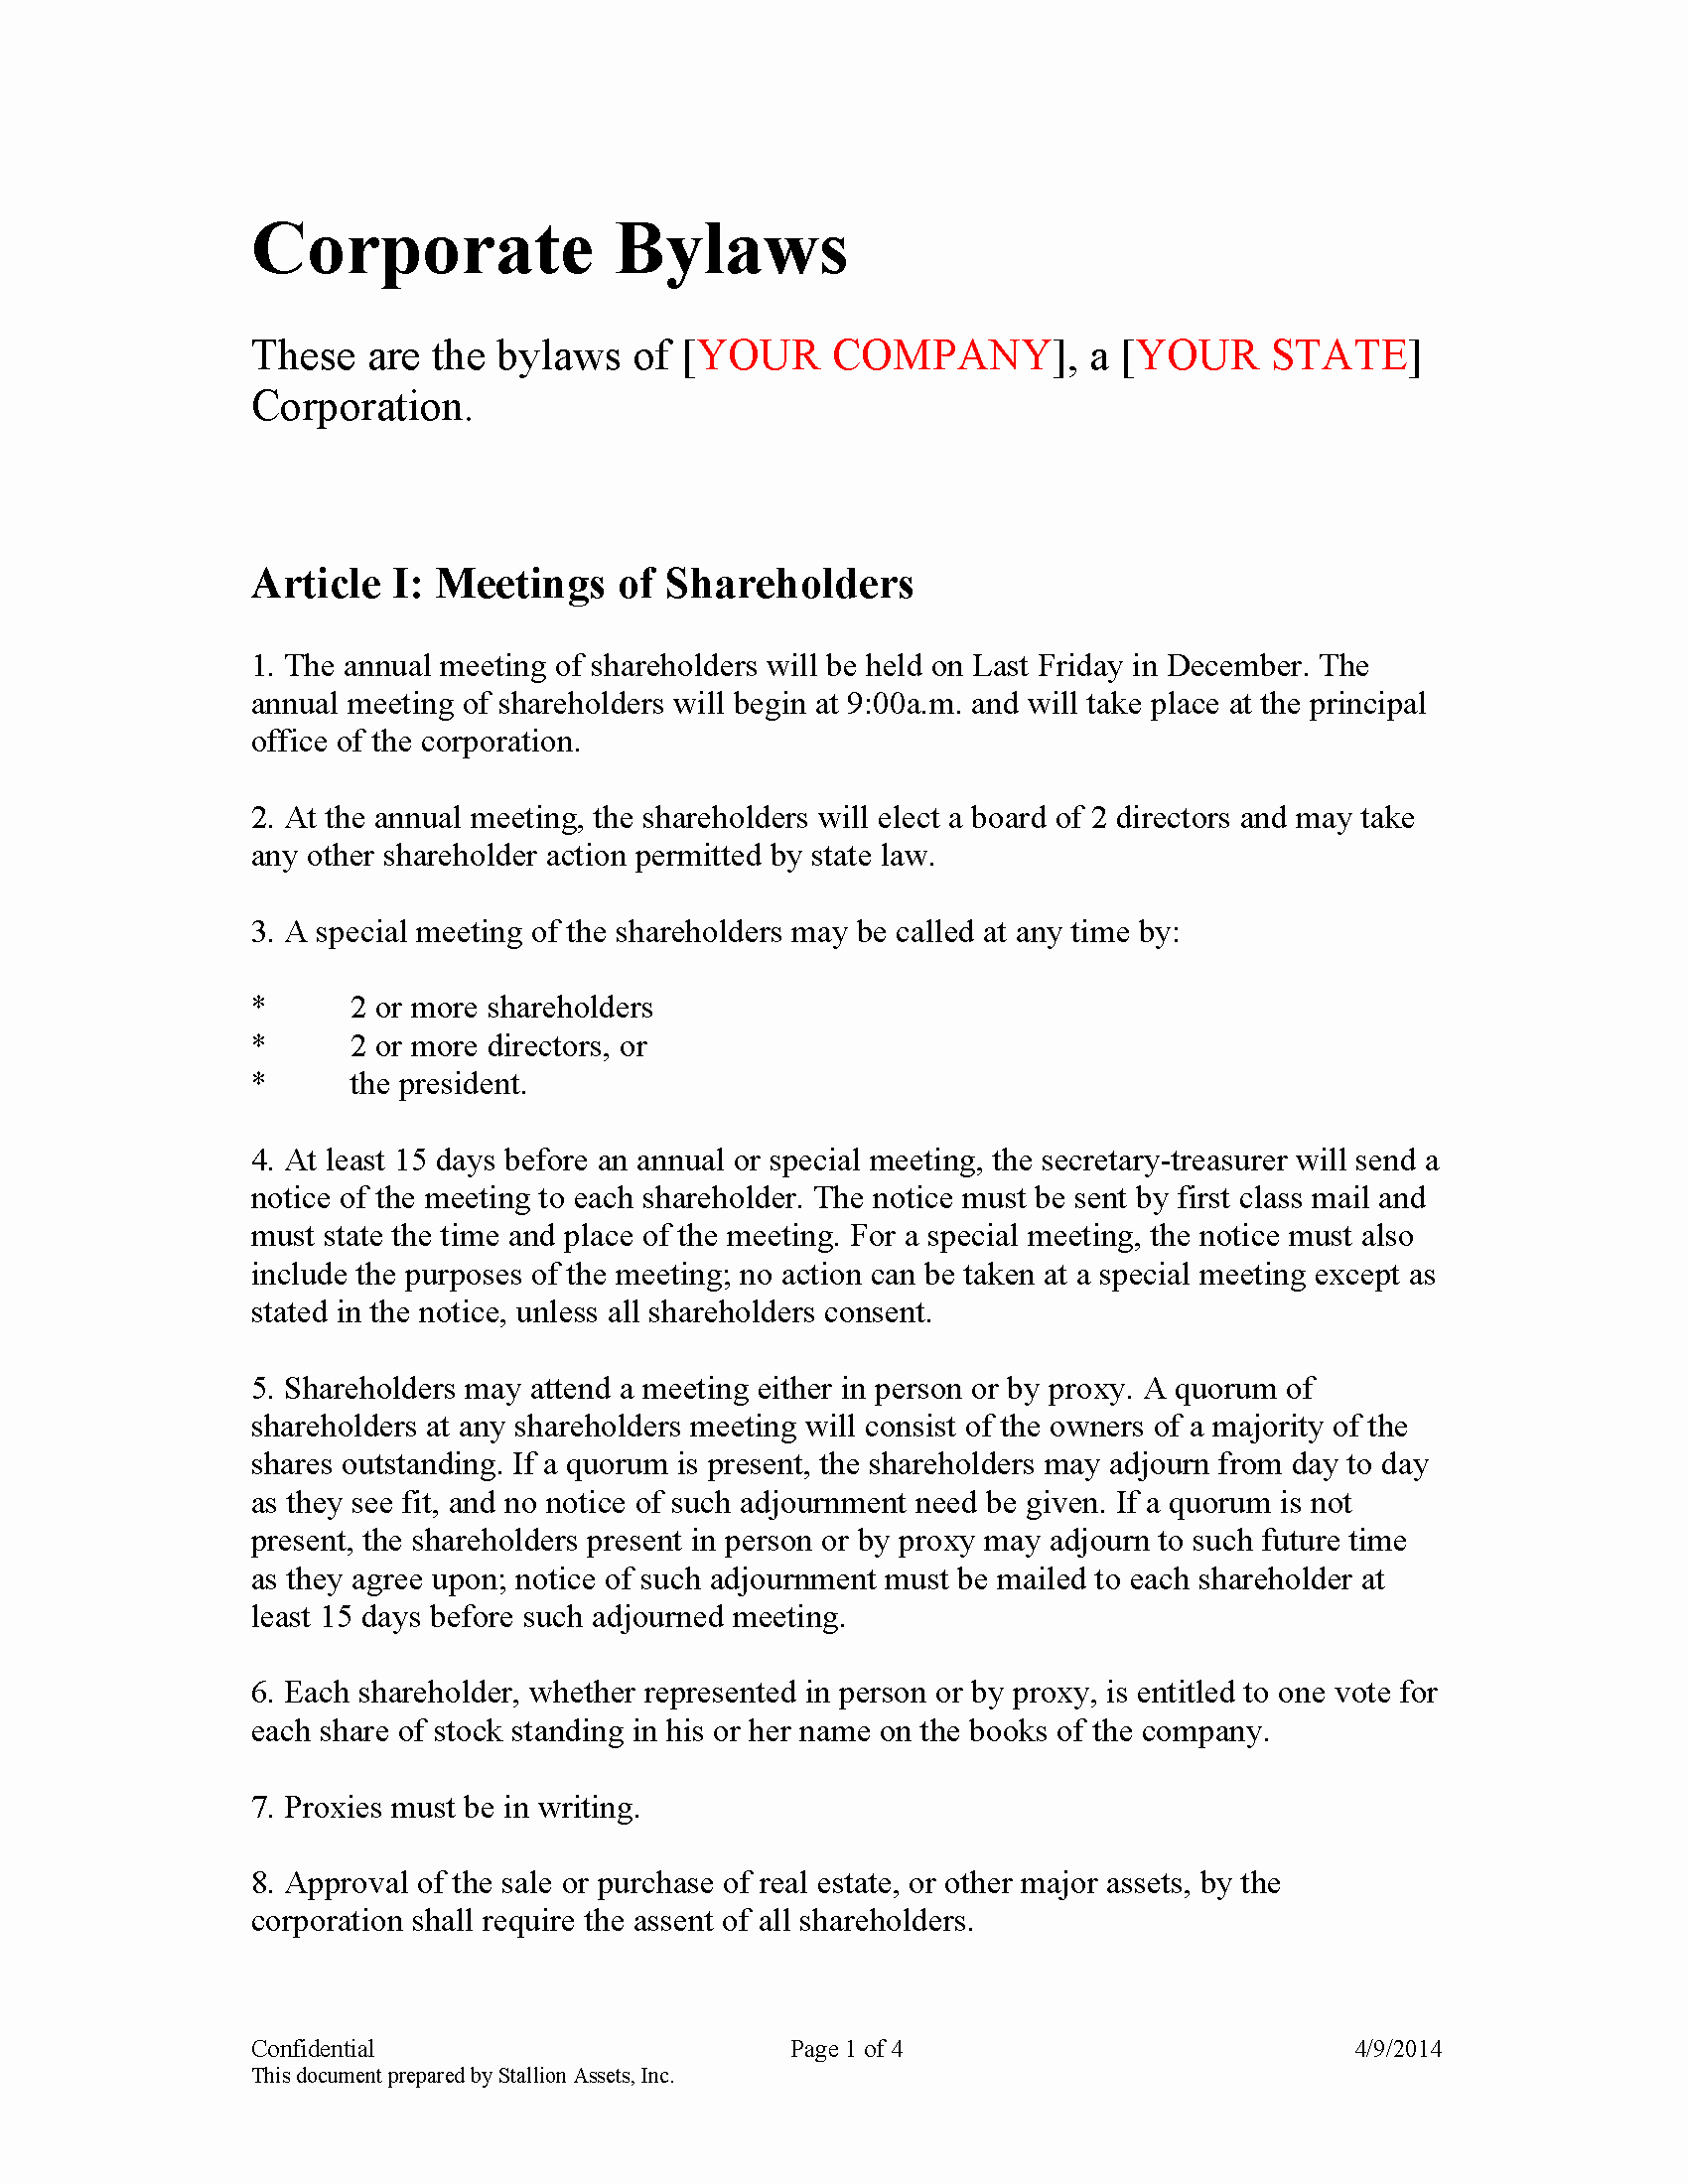 Corporate bylaws Template Free Fresh bylaw Template Mughals